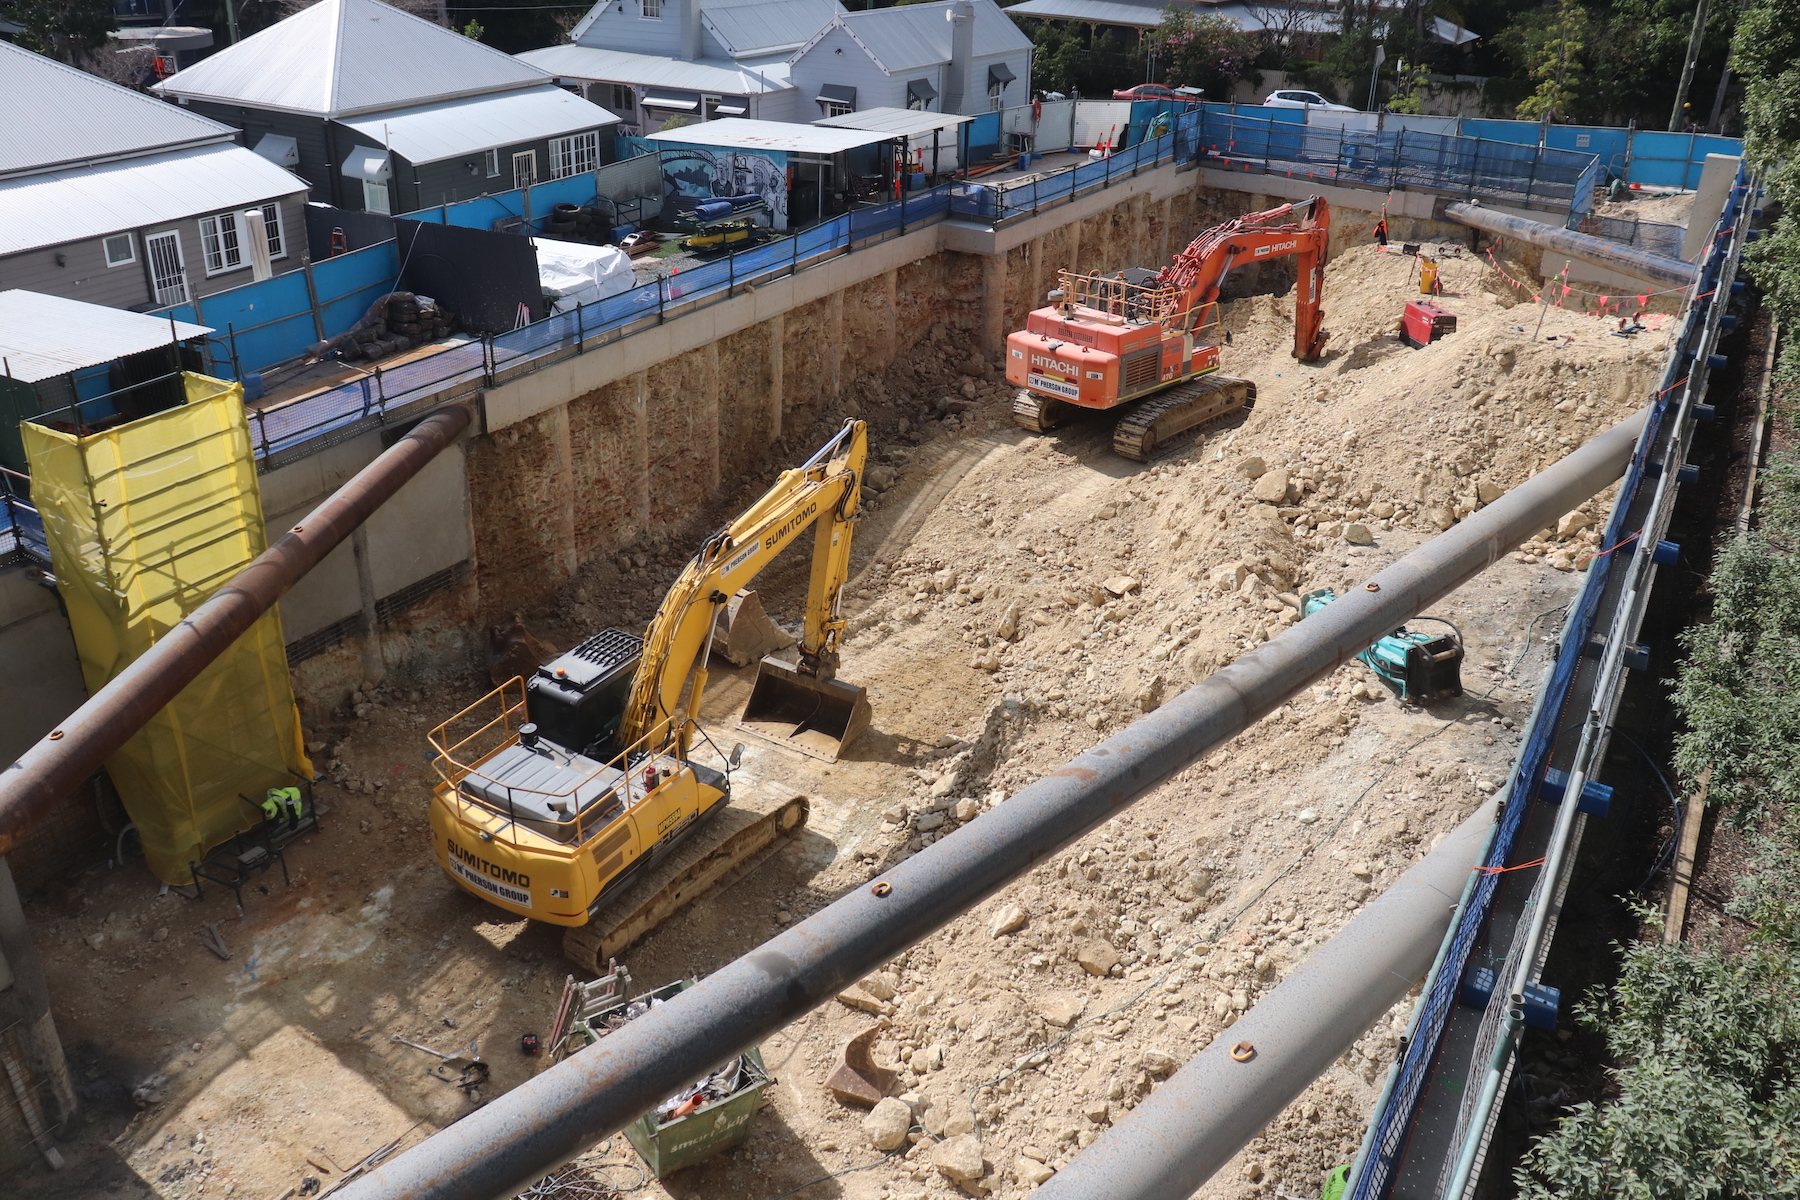 Time lapse images of a construction site